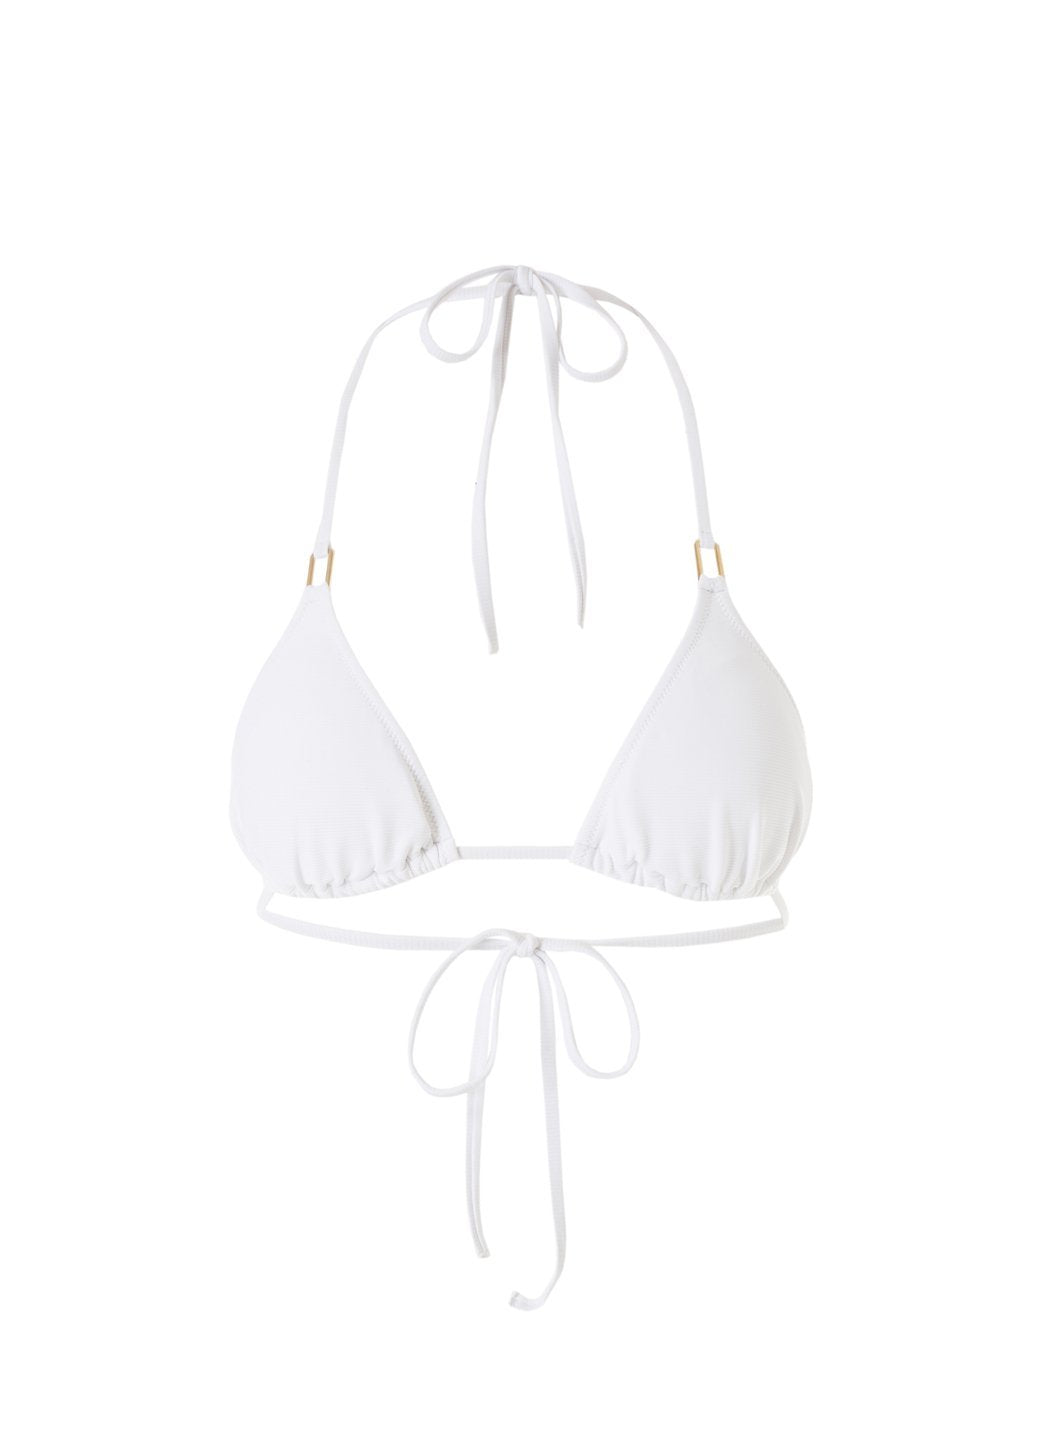 Exclusive Cancun White Ribbed Classic Triangle Bikini Top